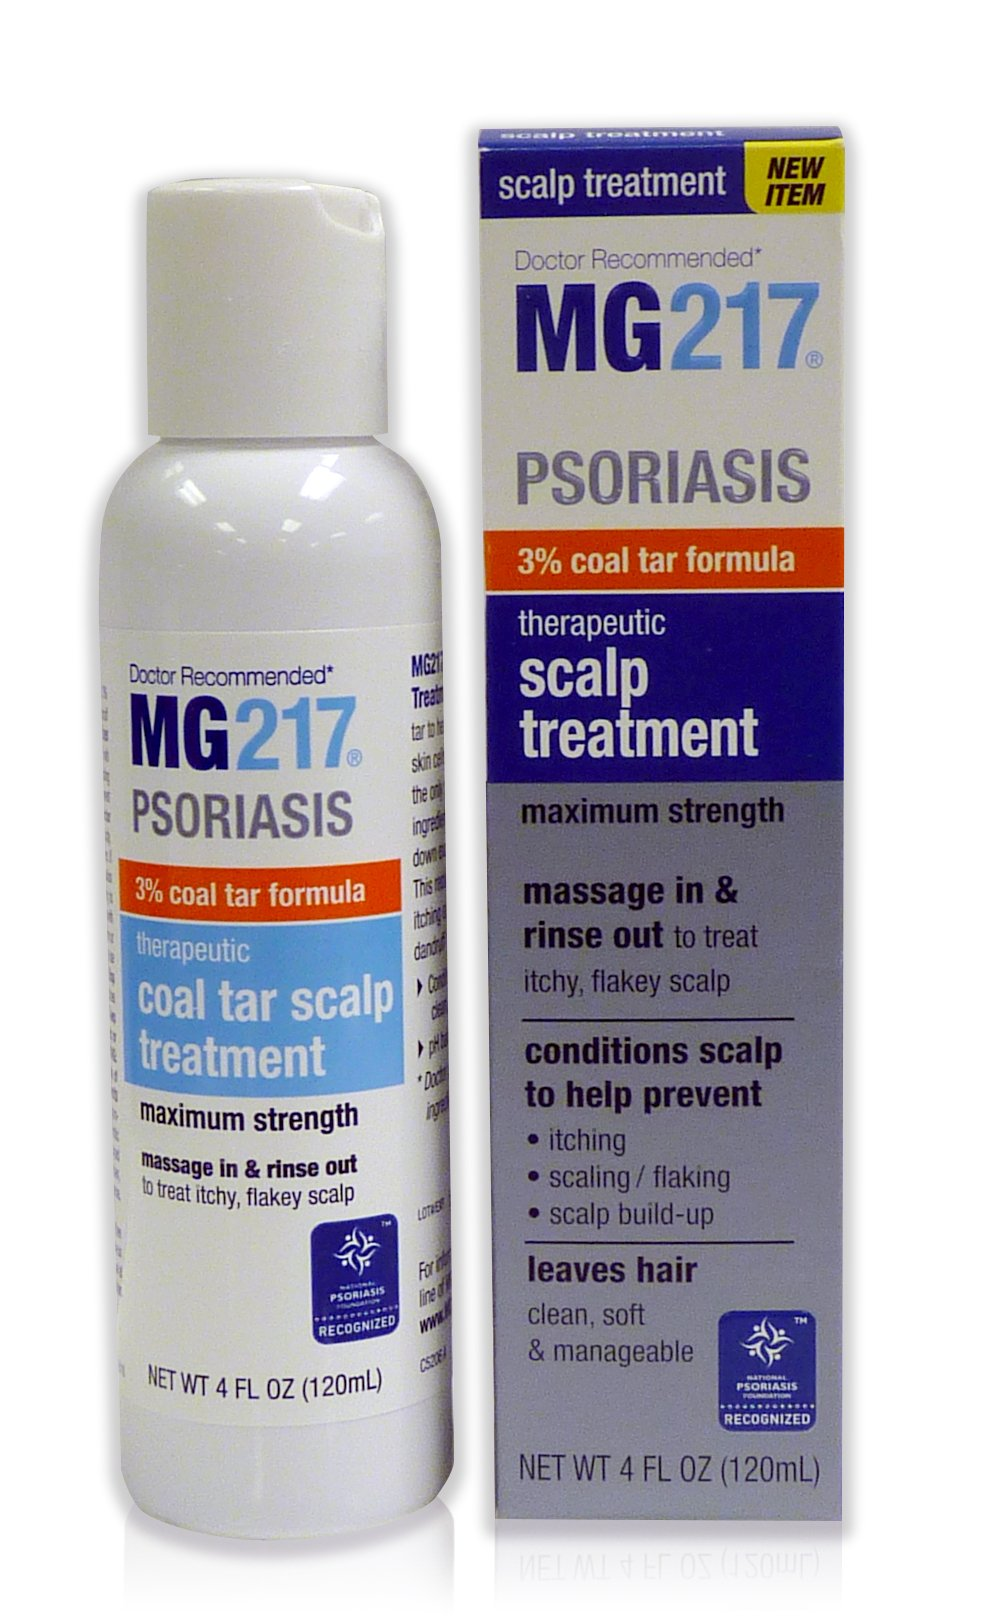 MG217 Psoriasis 3% Coal Tar Therapeutic Scalp Treatment, 4 Fluid Ounce by MG217